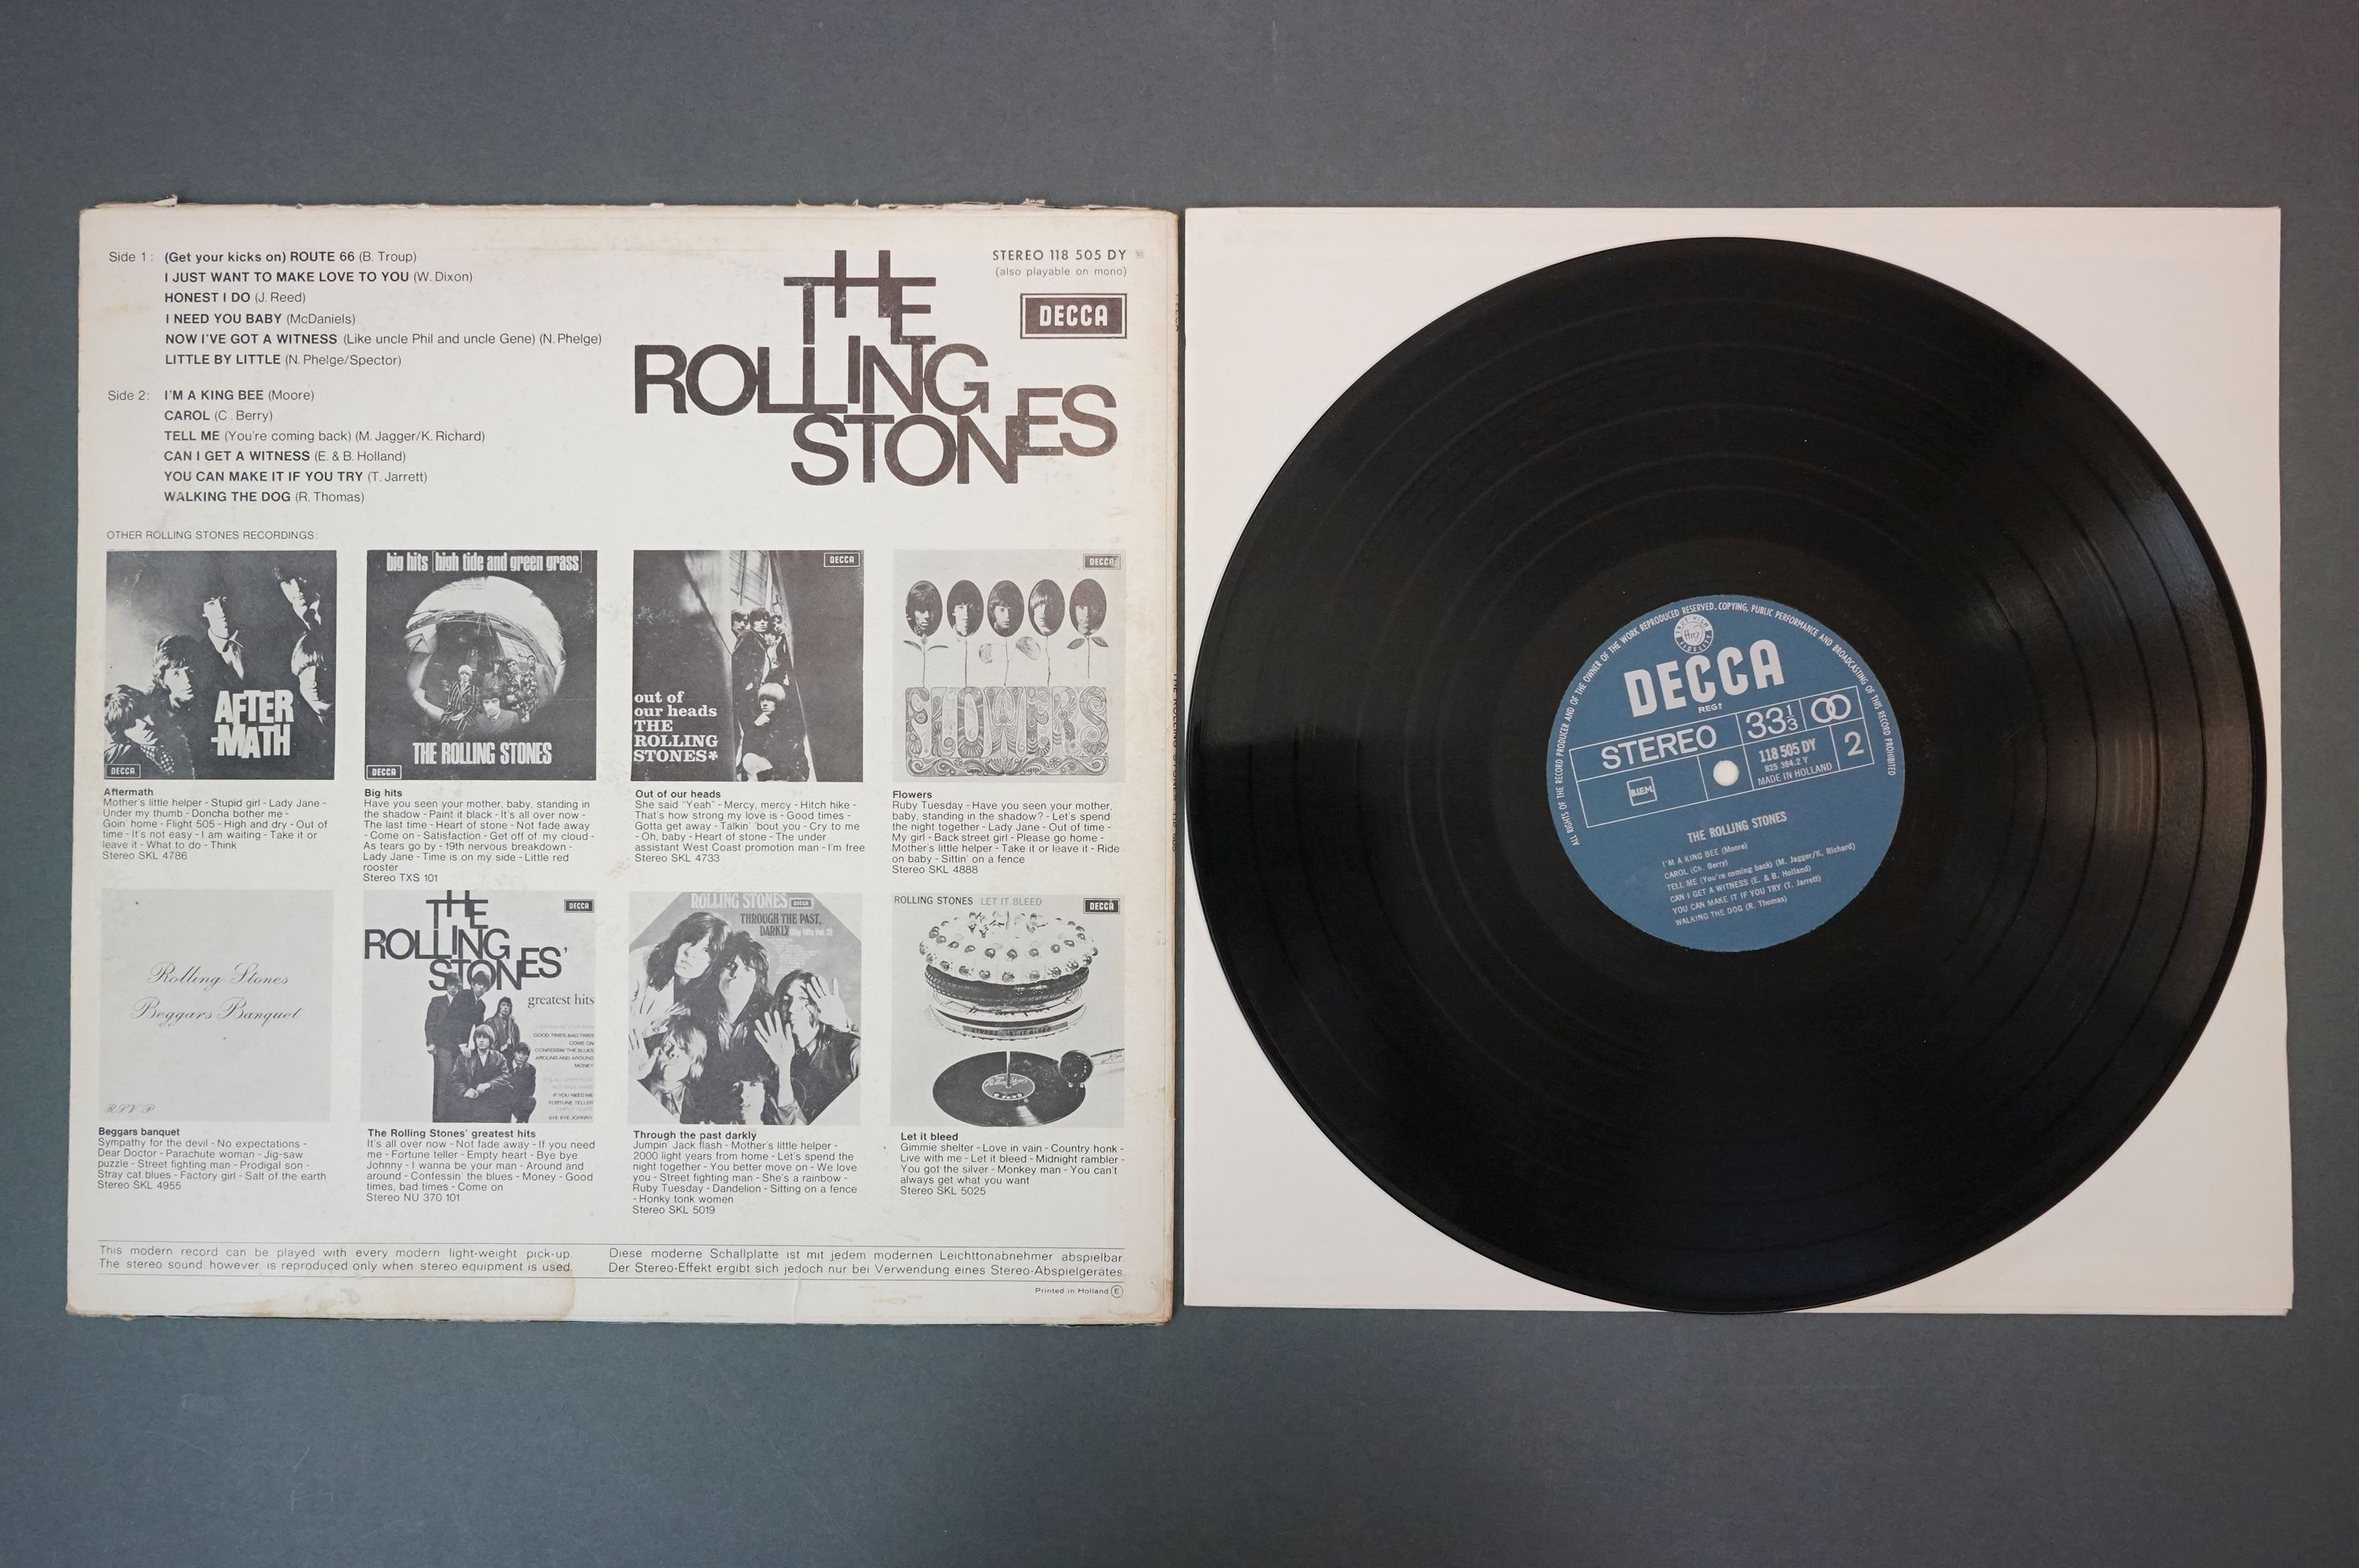 Vinyl - Rolling Stones 3 LP's to include Rolled Gold and Self Titled (both Dutch pressings), and - Image 10 of 10